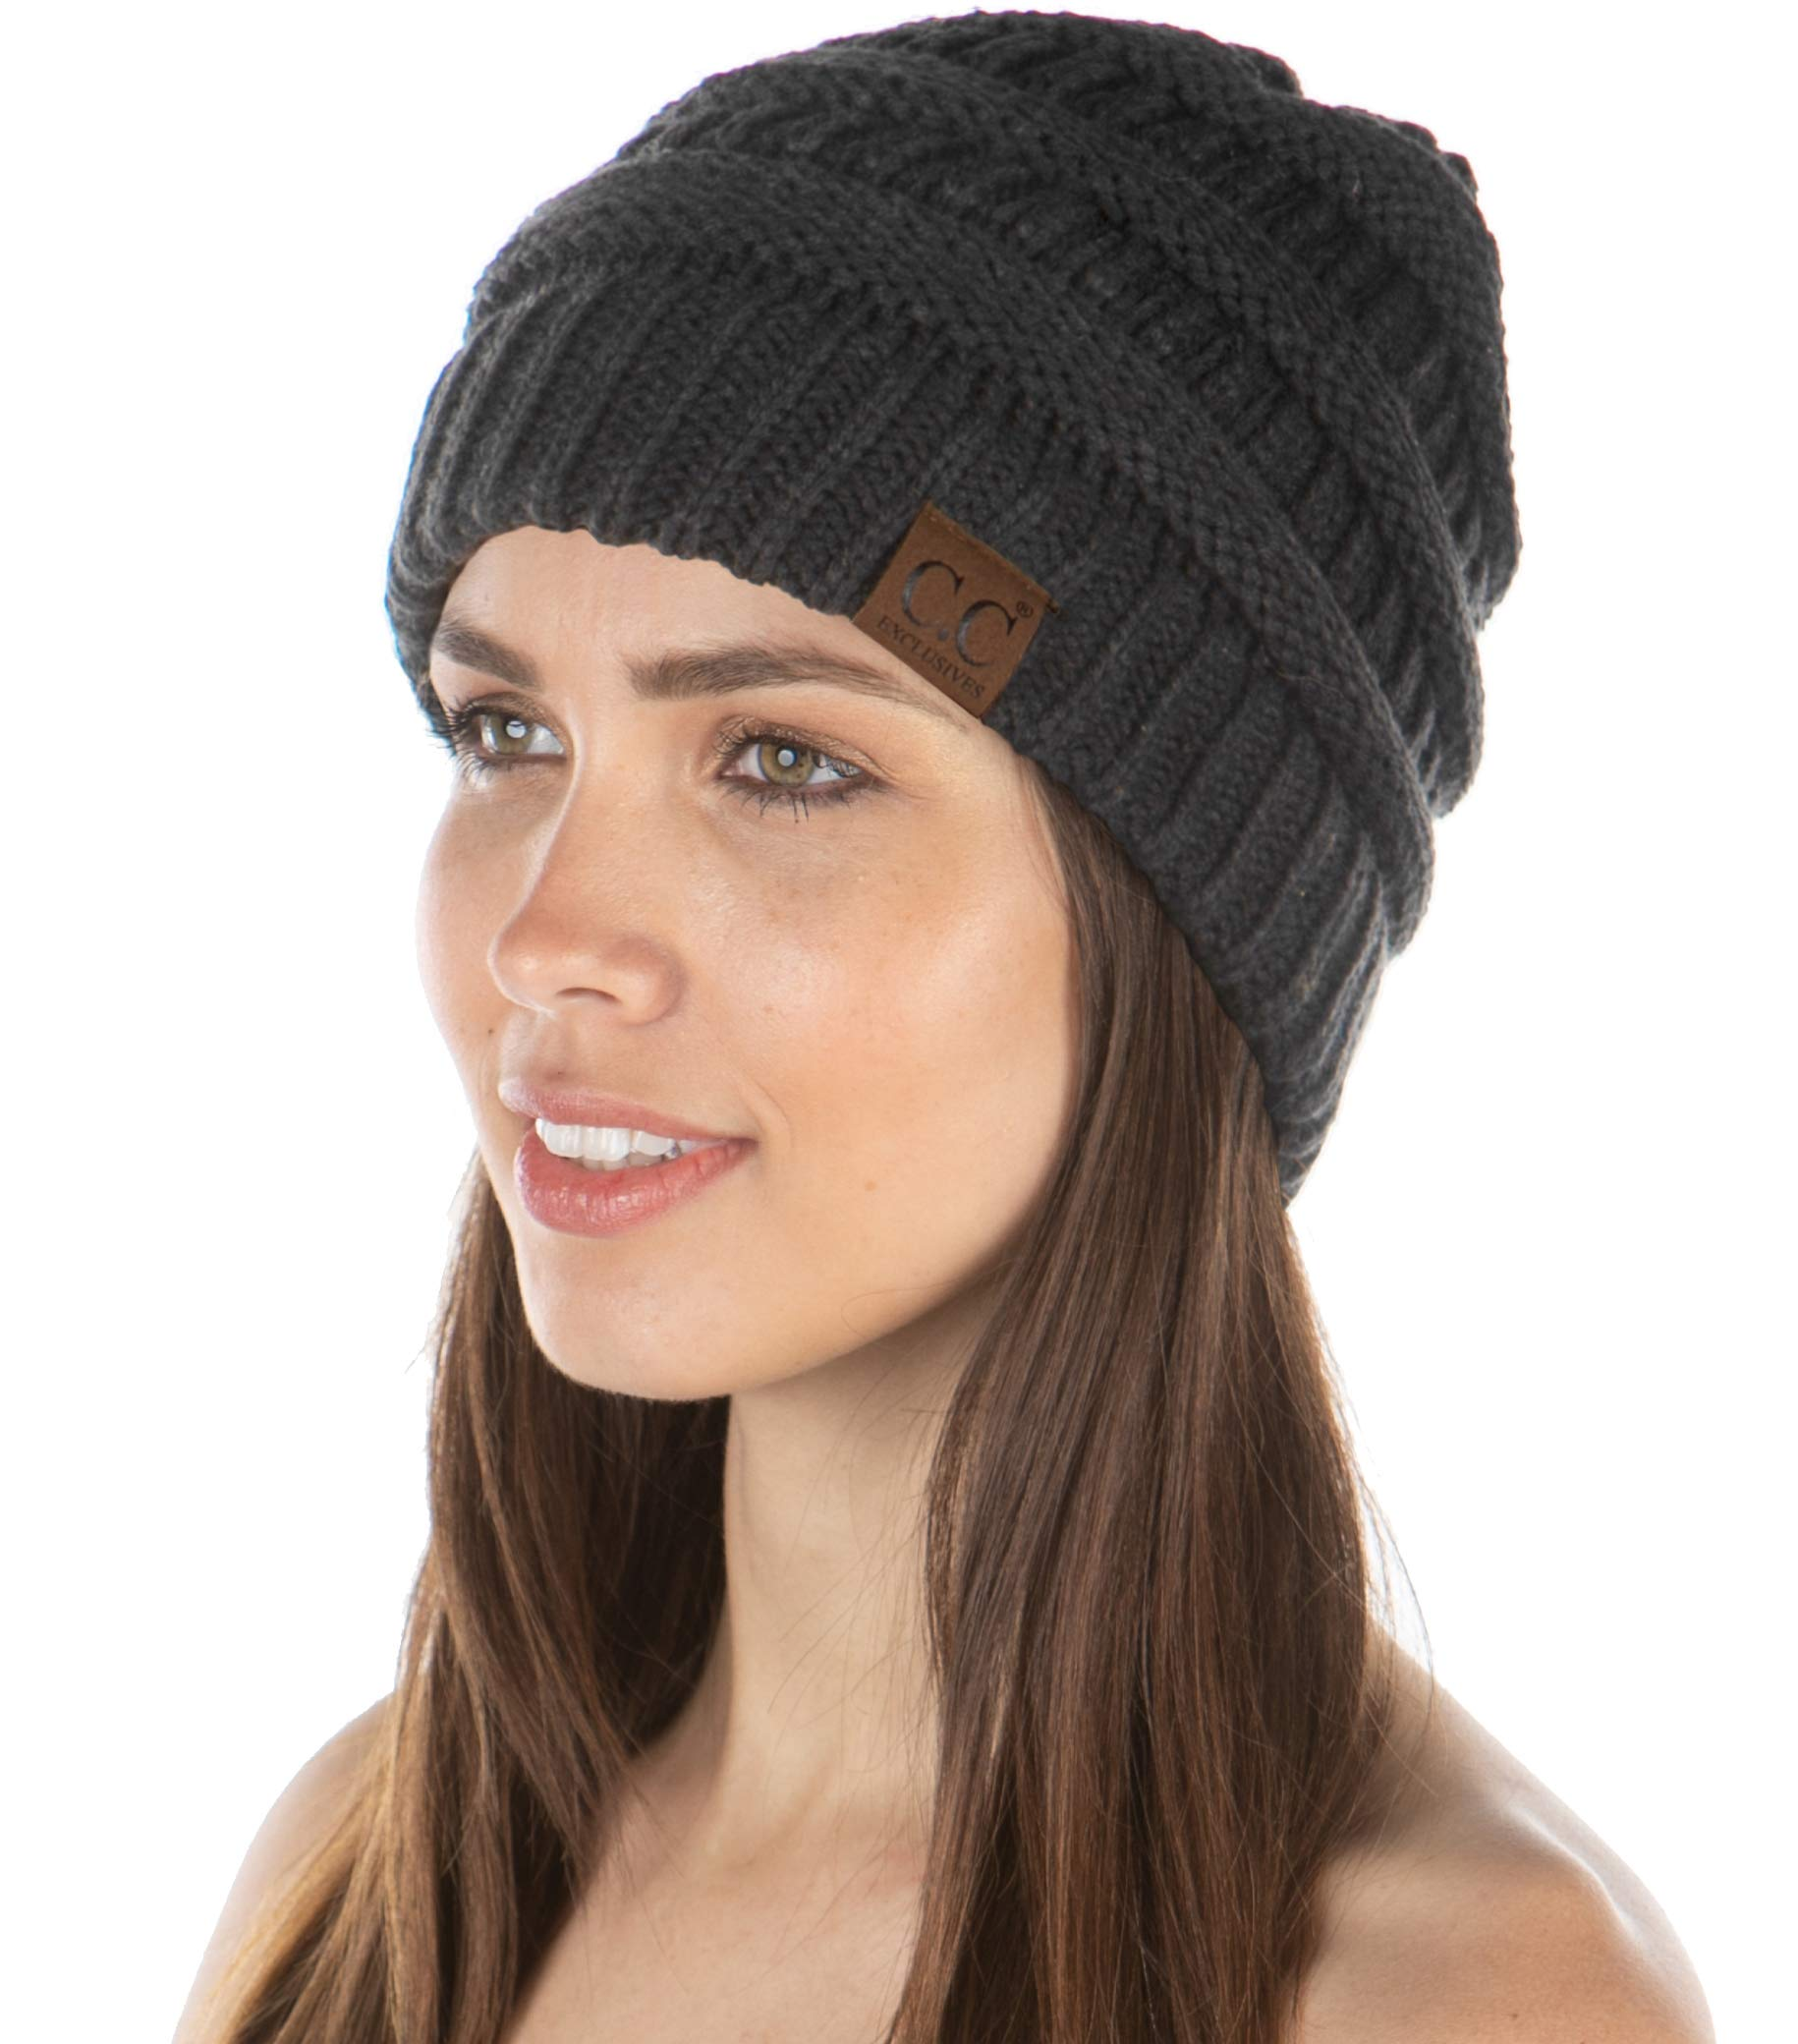 E3-20AHAT-70 Womens Beanie Soft Knit Classic Ribbed Slouch Hat - Charcoal